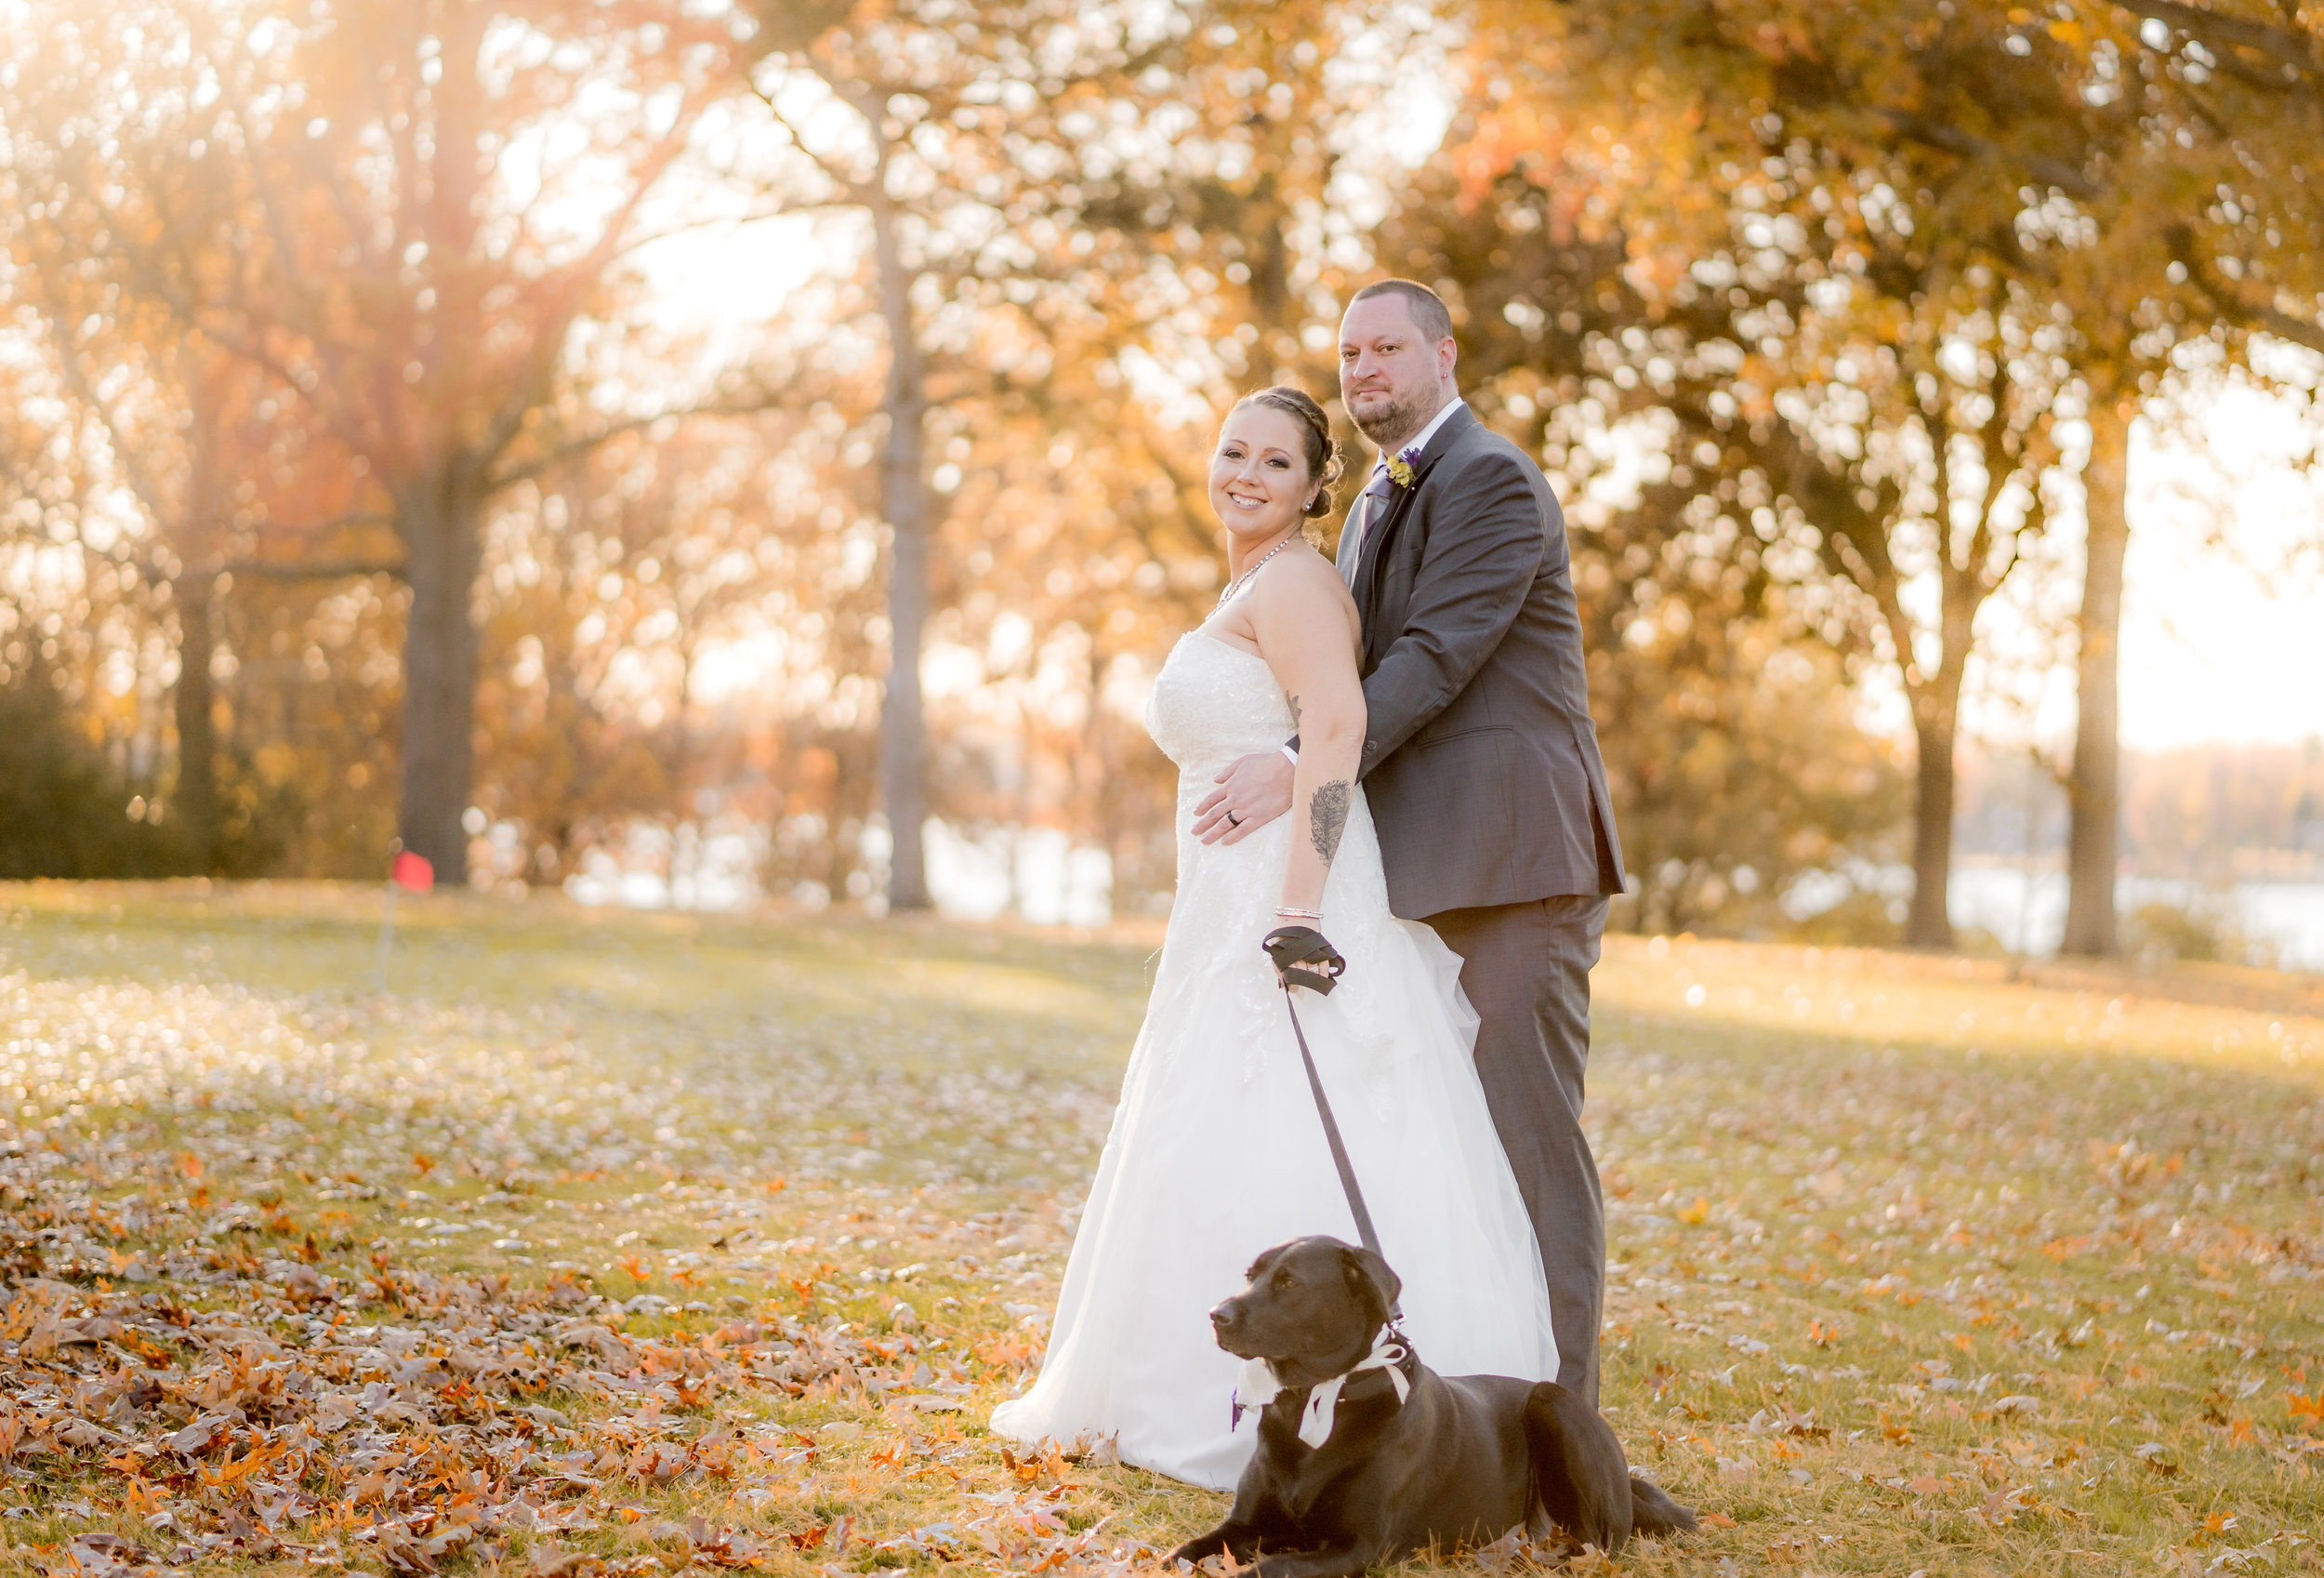 fall-autumn-wedding-bride-groom-outdoors-black-lab-dog.jpg